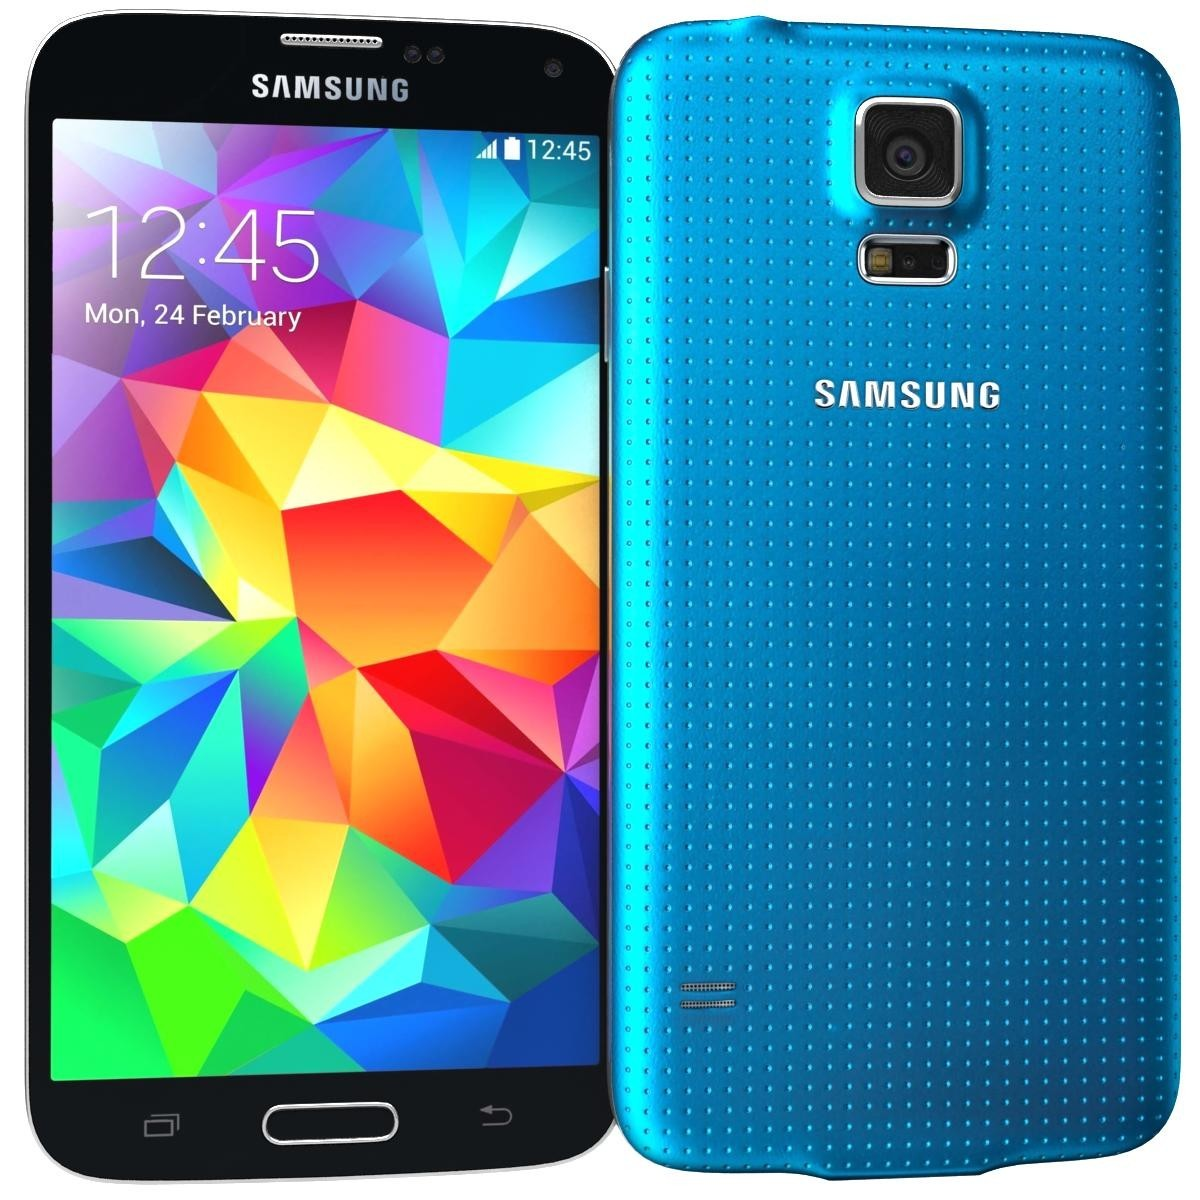 Samsung Galaxy S5 16GB SM-G900 Android Smartphone ...